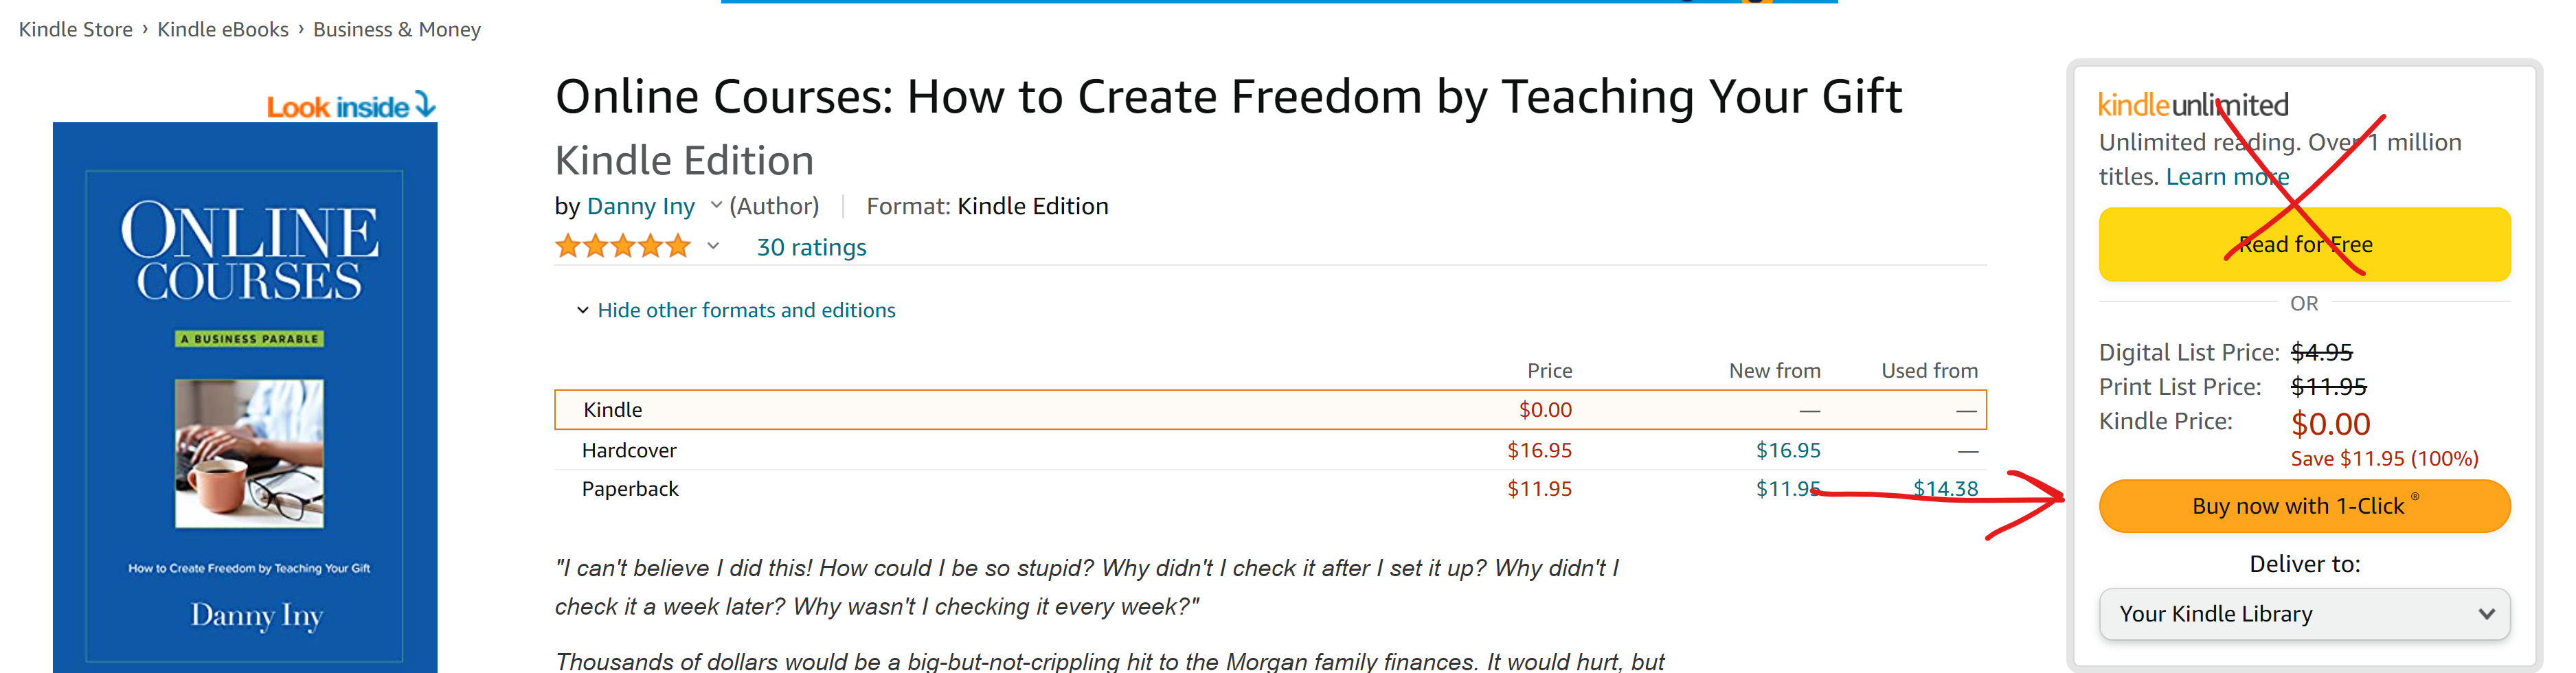 screen capture showing how to buy a book with 1-Click